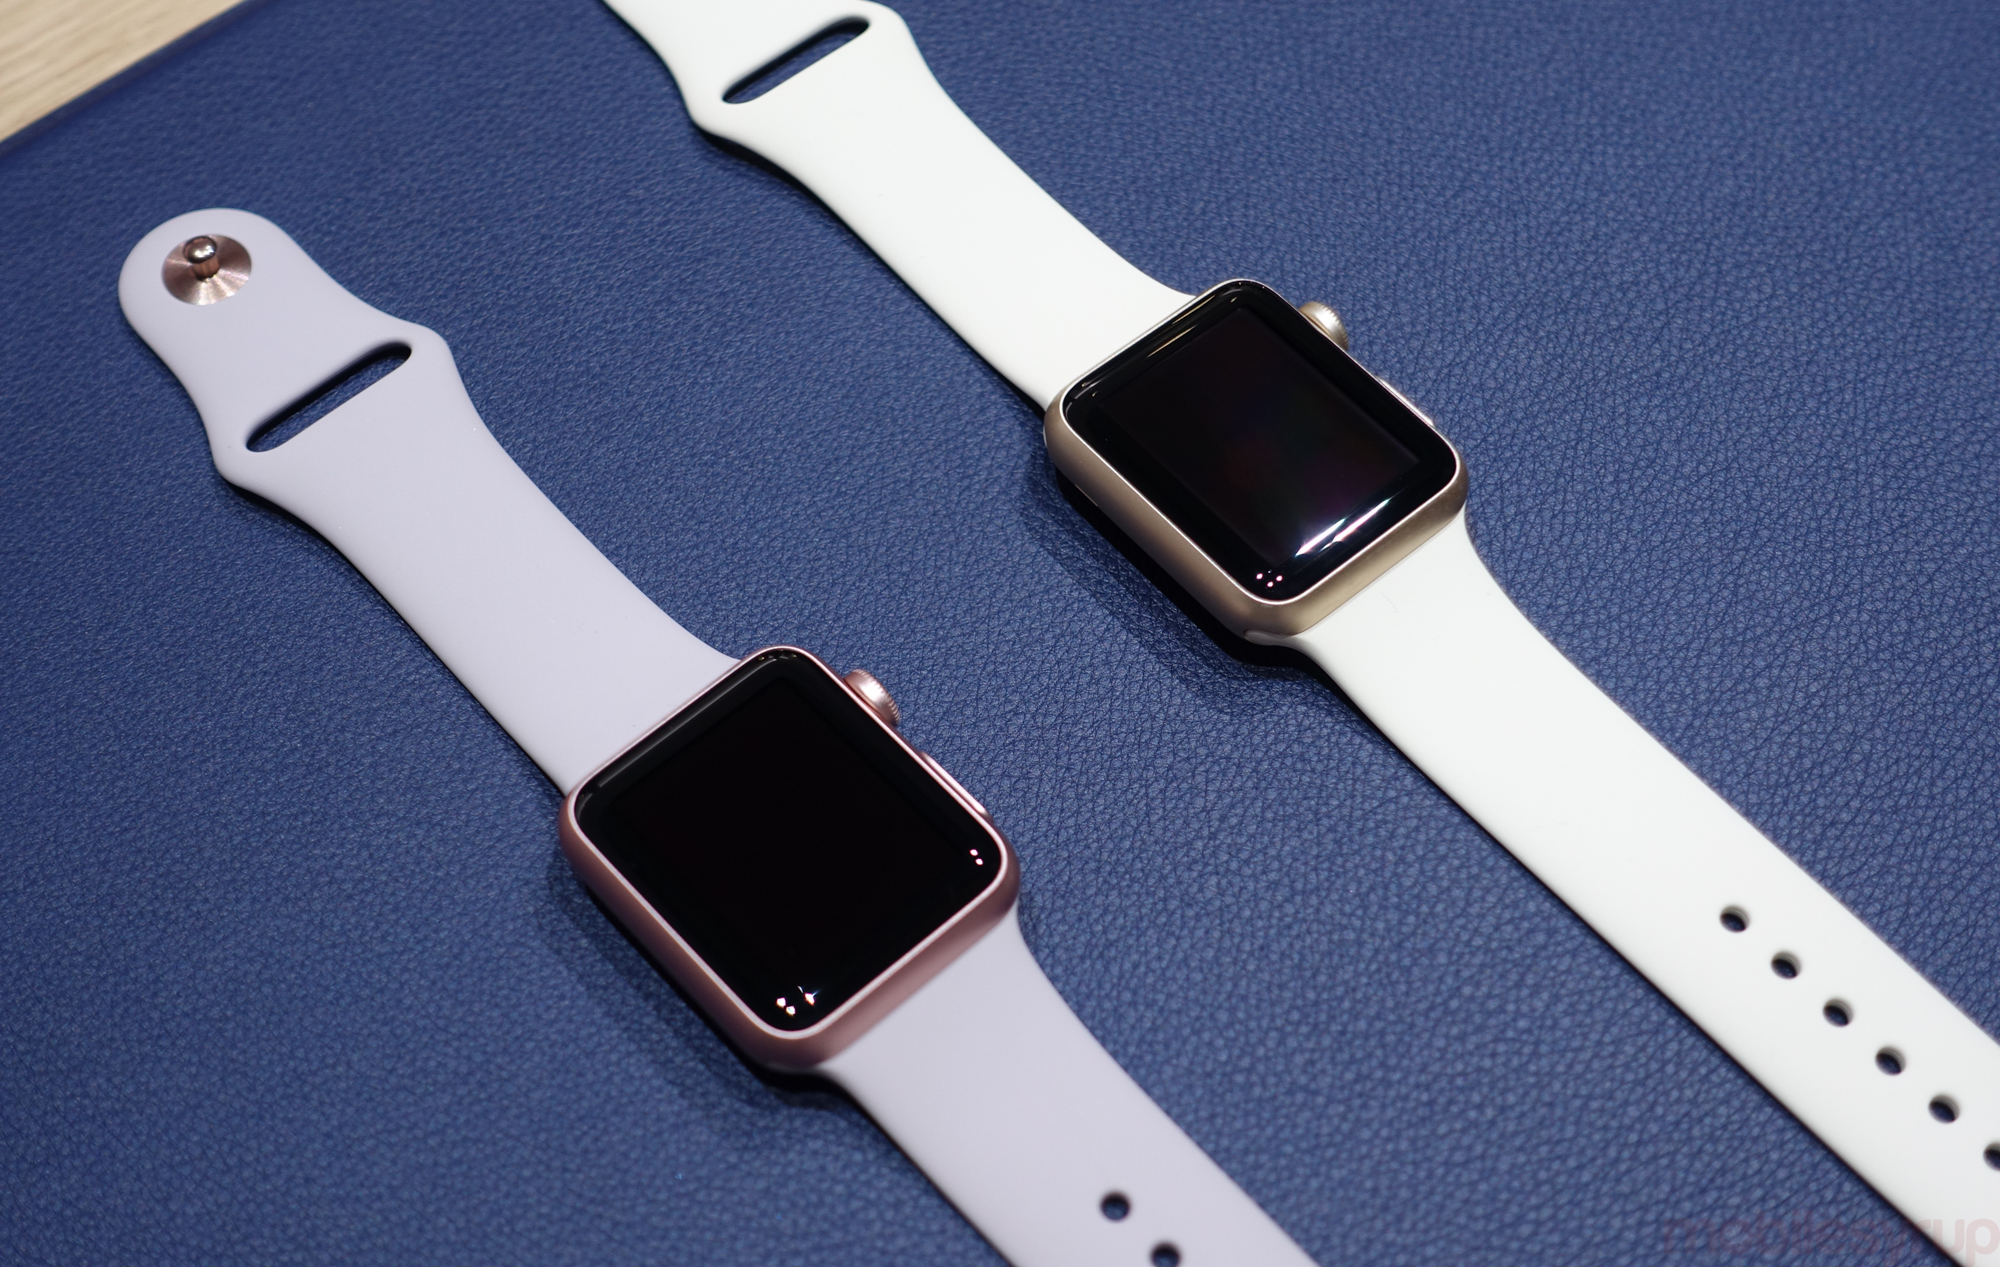 Hands On New Gold And Rose Apple Watch Cases Add More 2 Series 42mm Aluminium With Midnight Blue Sport Band Personalization To Apples Wearable Mobilesyrup